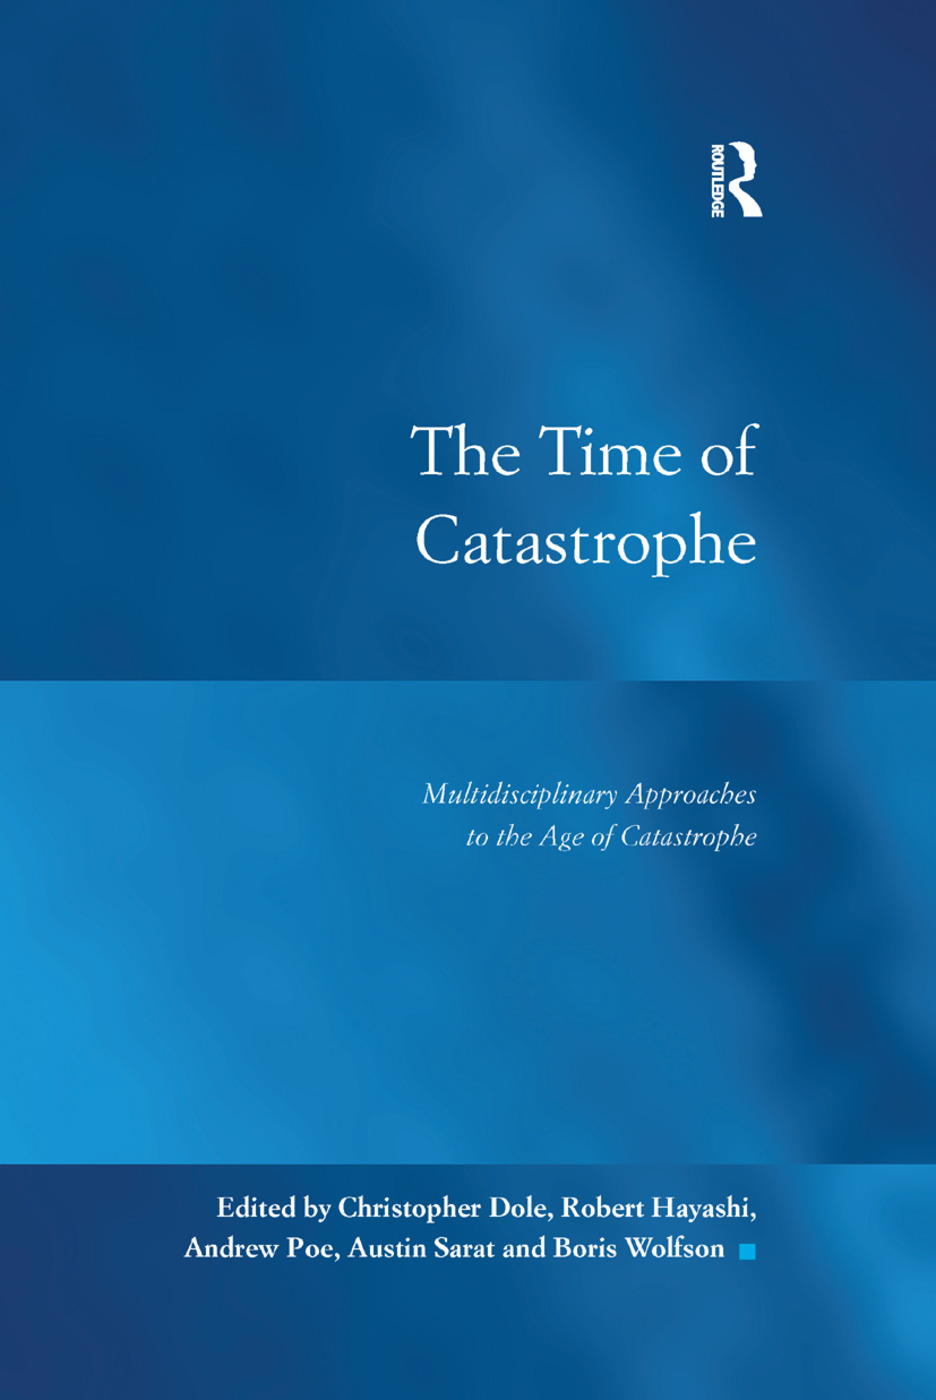 The Time of Catastrophe: Multidisciplinary Approaches to the Age of Catastrophe book cover